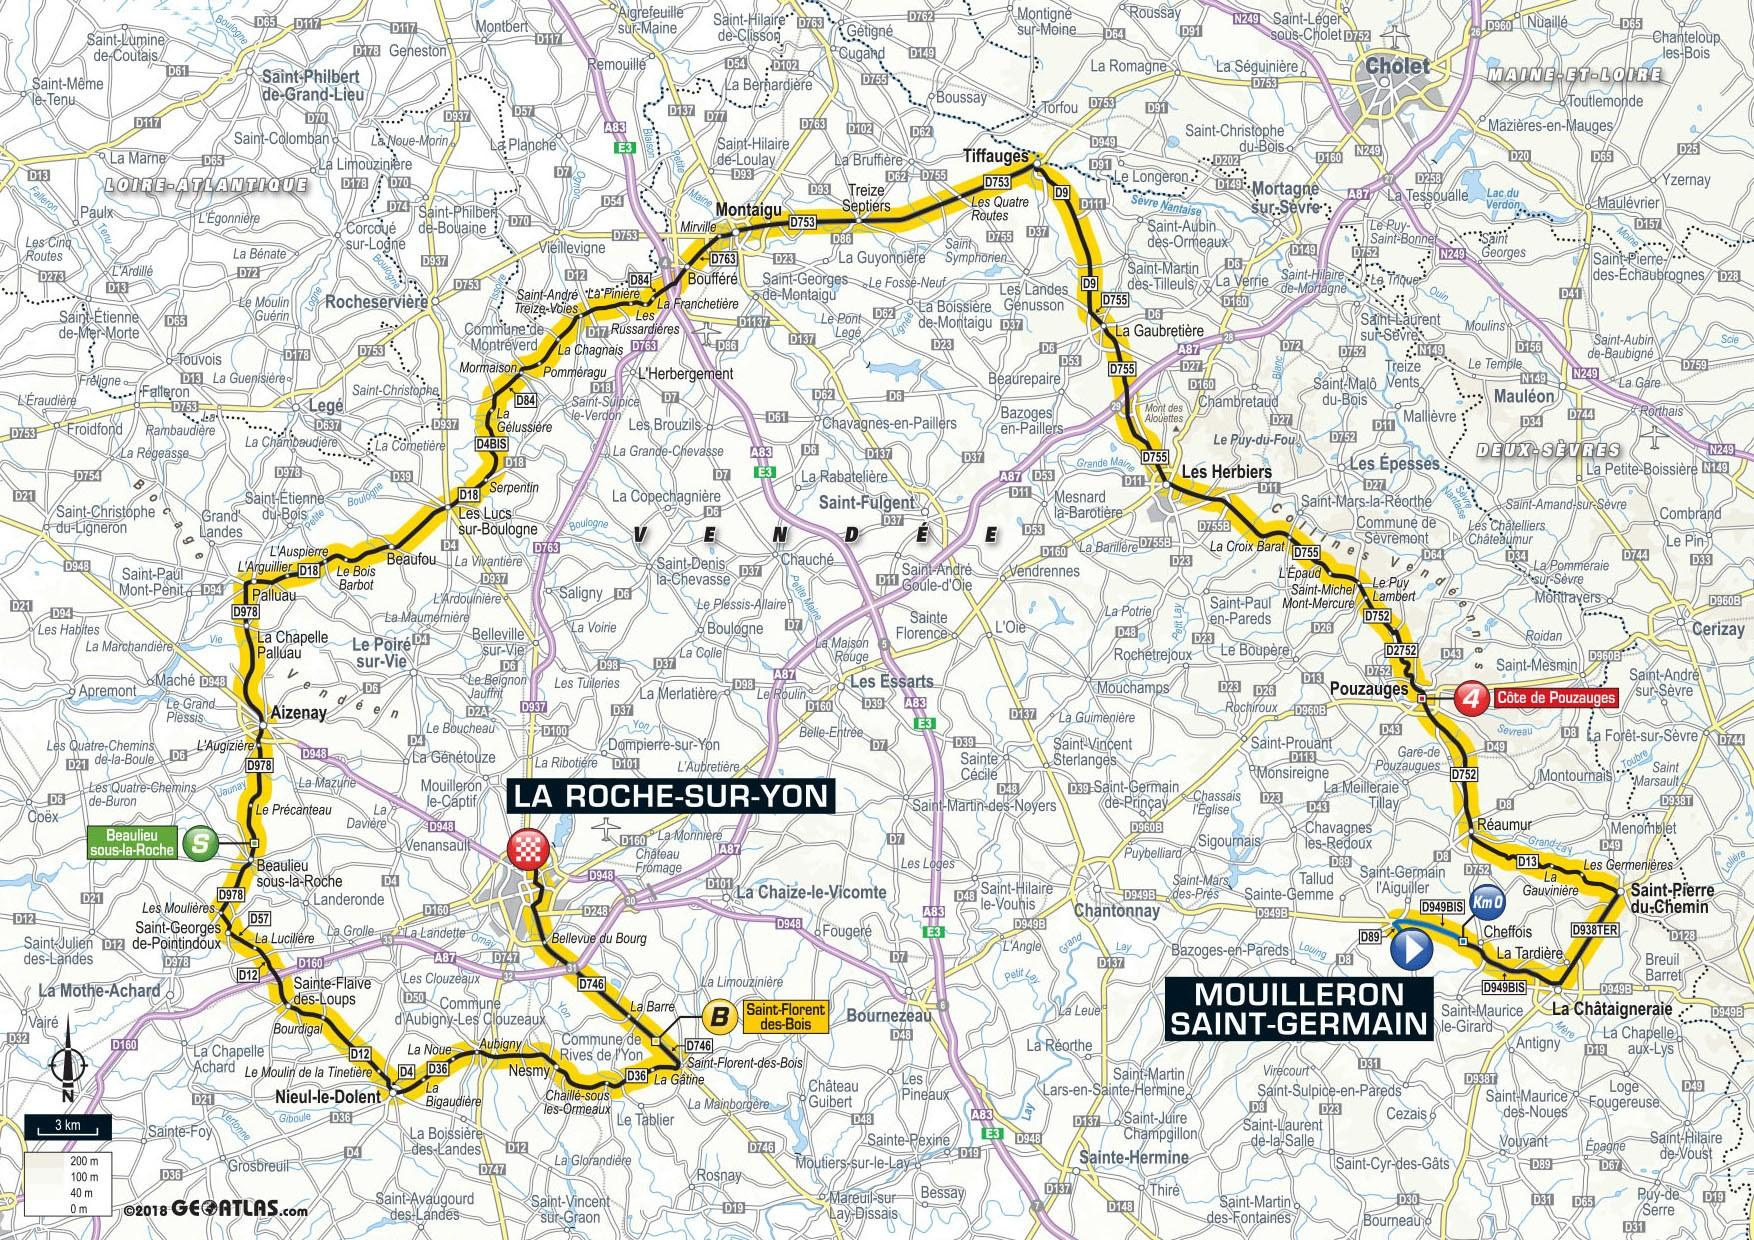 tour de france 2018: stage-by-stage guide of the routes, profiles